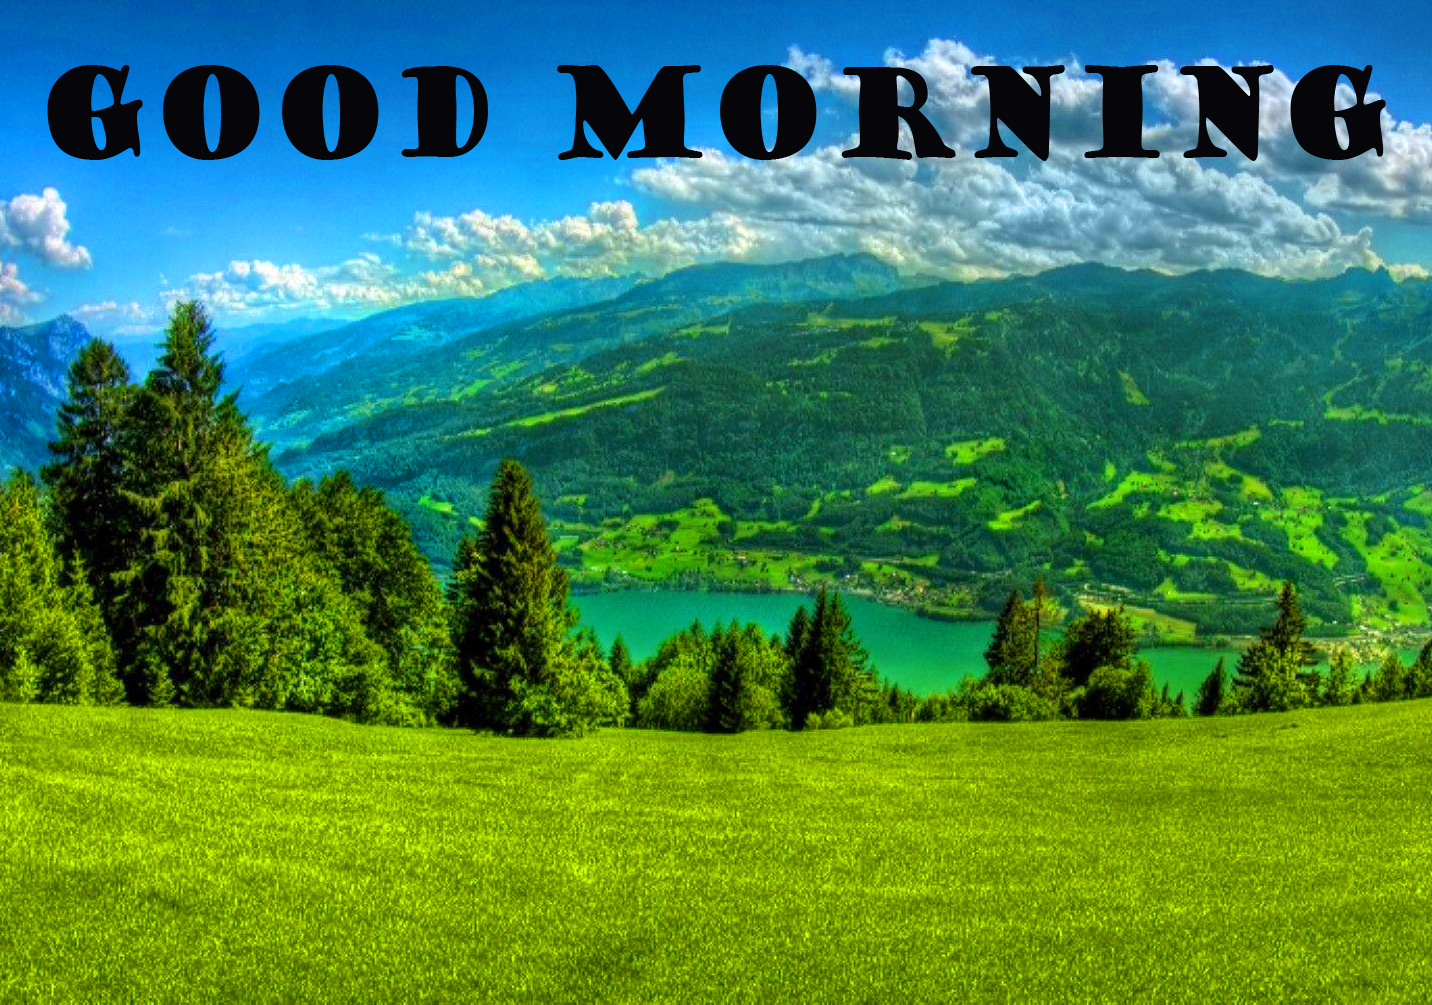 Good Morning Nature Wallpaper Pictures In HD